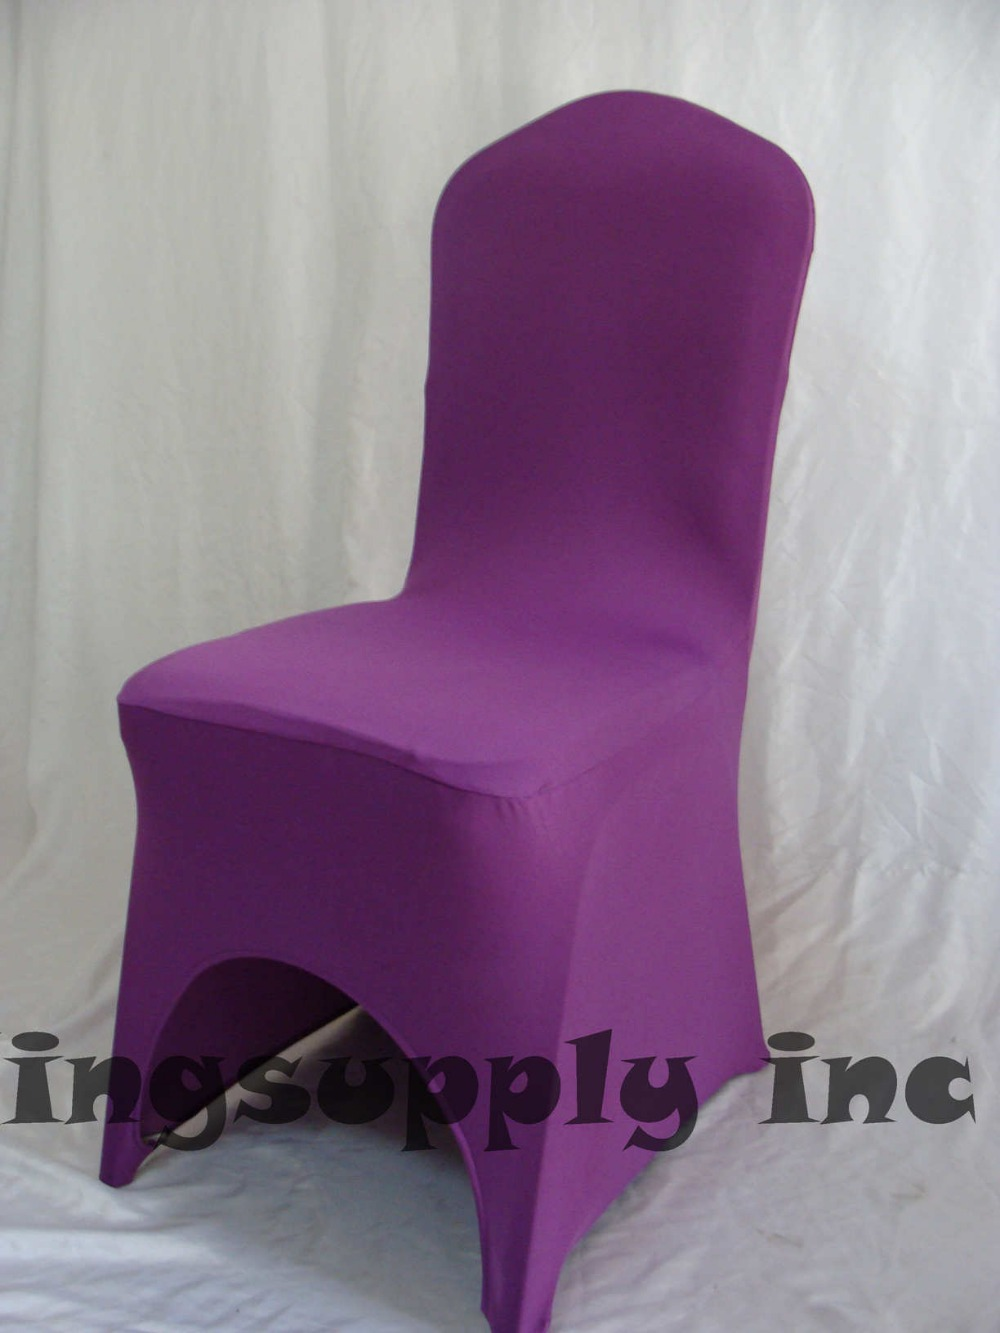 100 Premium Purple Spandex/Polyester Chair Covers for Wedding Banquet Chair Cloth Universal Chair Cover free shipping(China (Mainland))